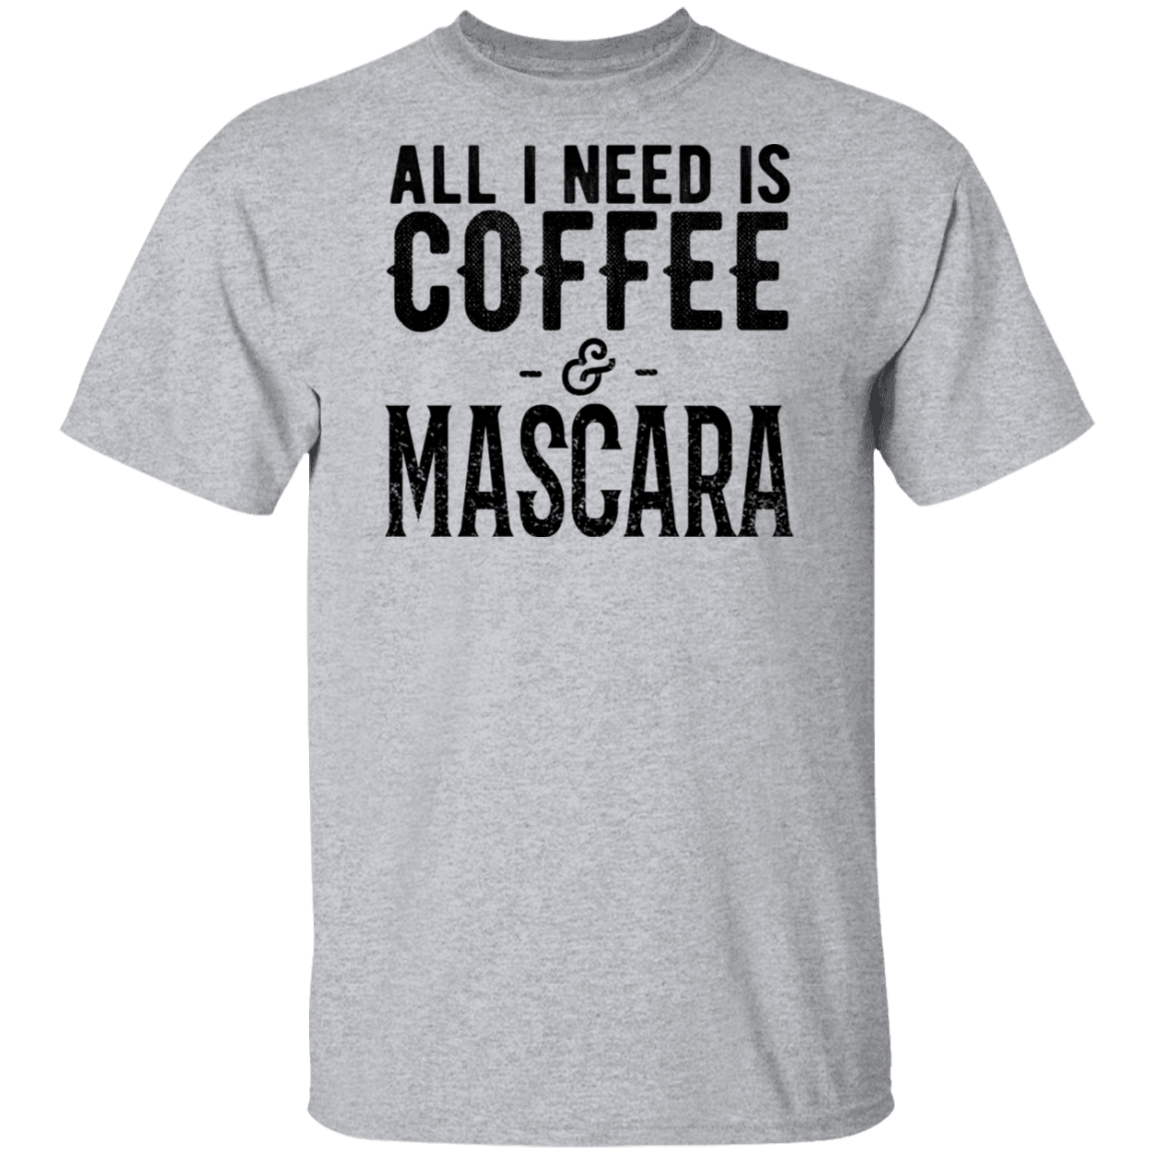 All I Need Is Coffee And Mascara T-Shirts, Hoodies, Tank 1049-9972-80779105-48200 - Tee Ript